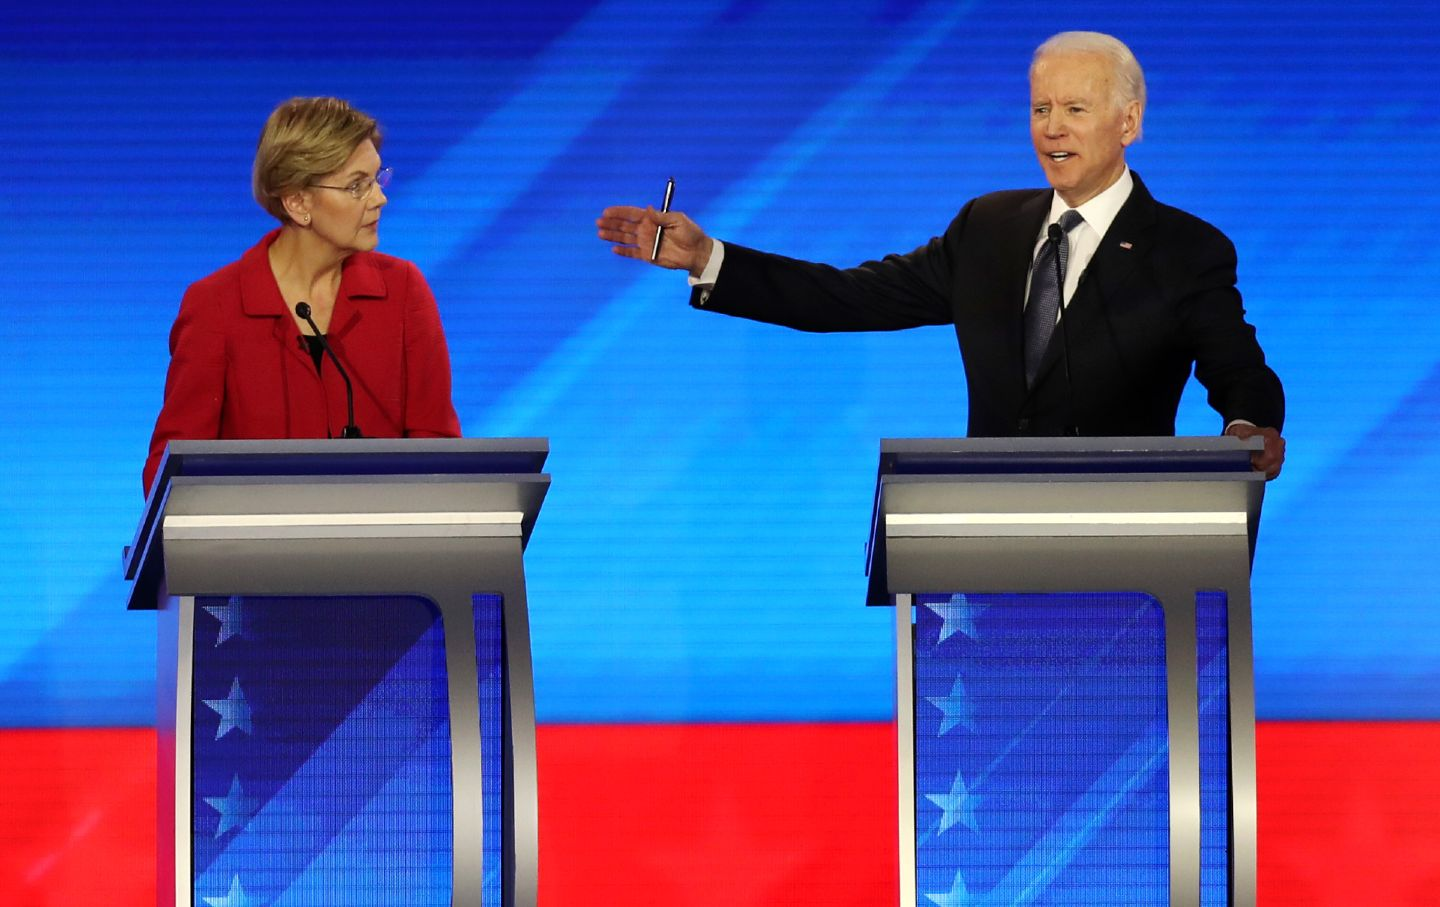 Elizabeth Warren and Joe Biden stand at their podiums at the presidential debate. Biden's hand is up, gesturing toward Warren.